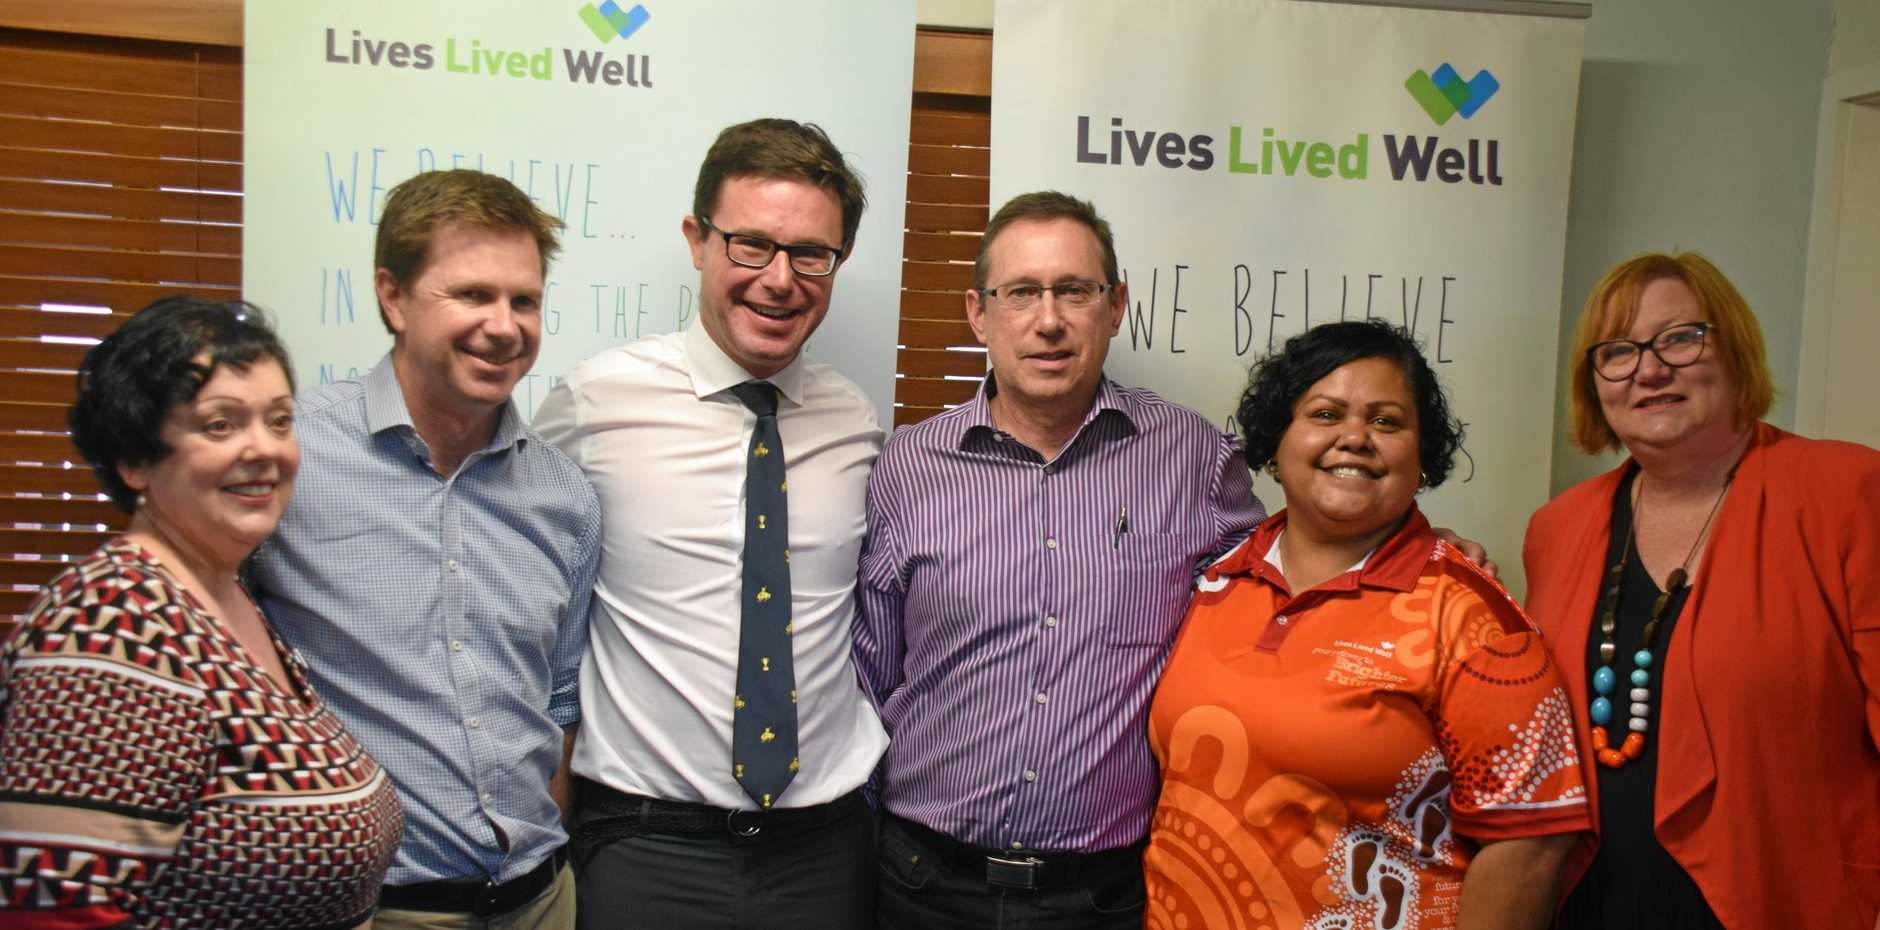 NEW PREMISES: David Littleproud MP joined the Lives Lived Well team to celebrate the new office.